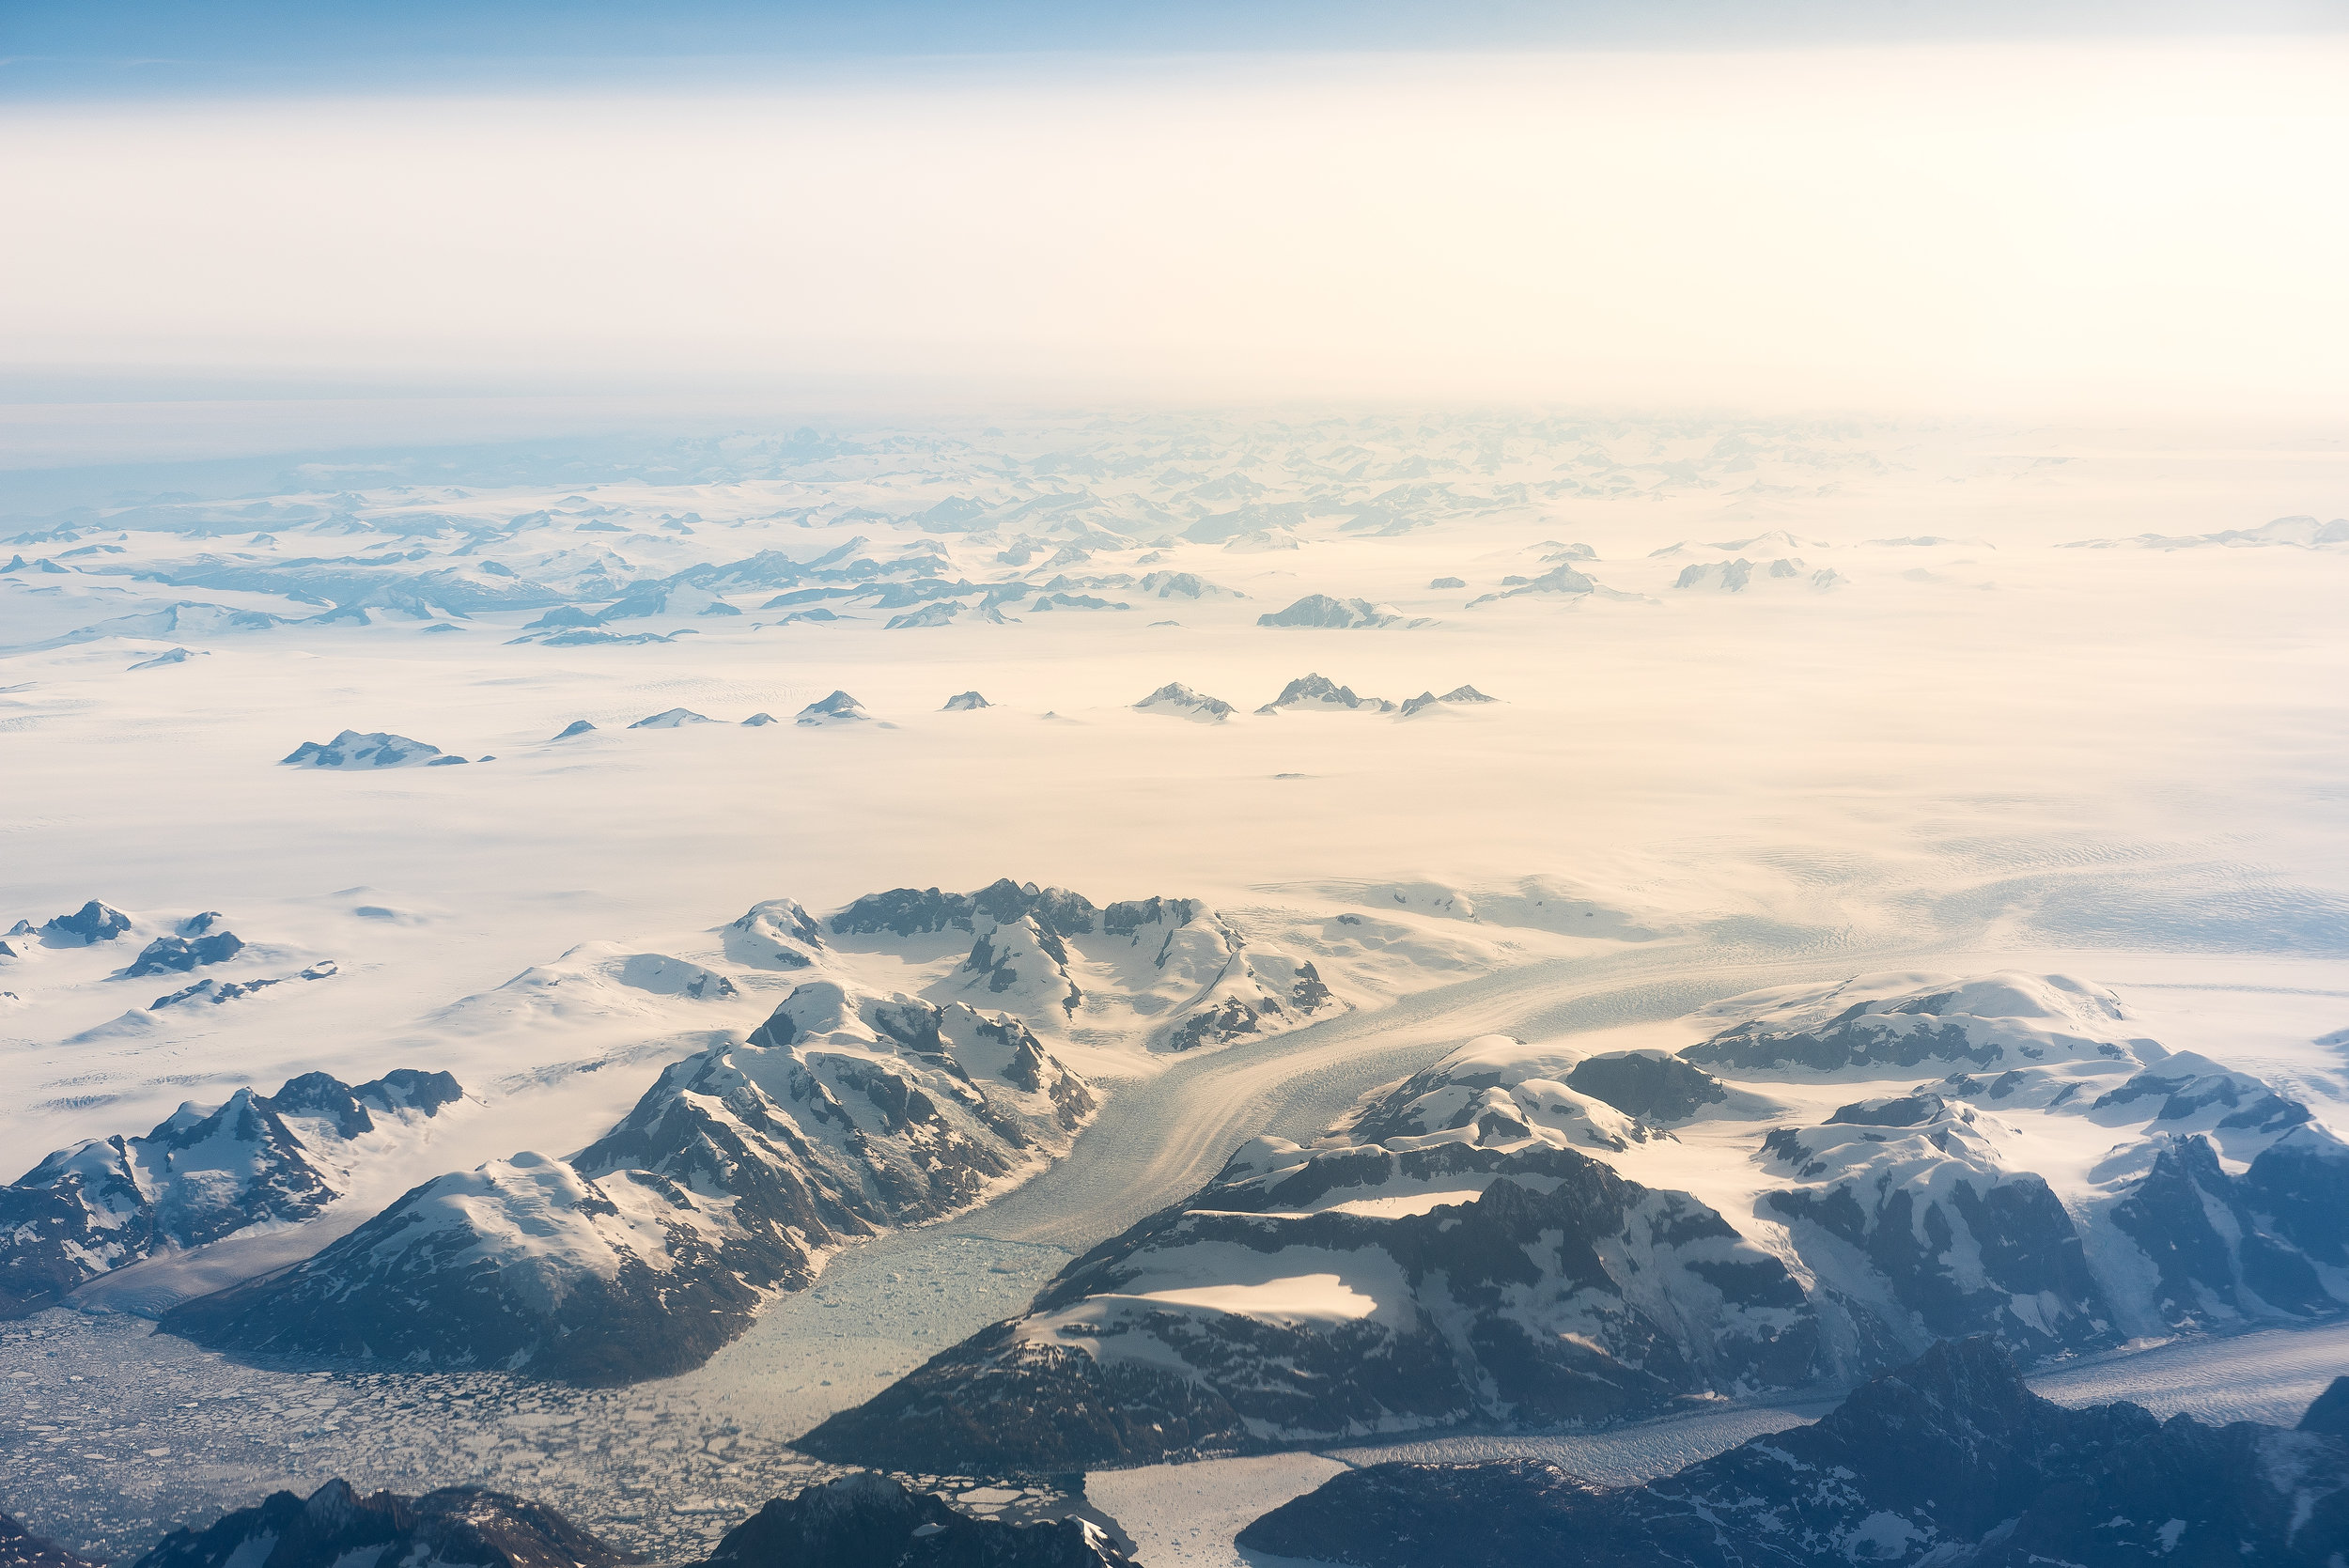 On the flight home, the pilot took us over Greenland, which was a great way to end the trip.. what a beautiful sight from the plane.